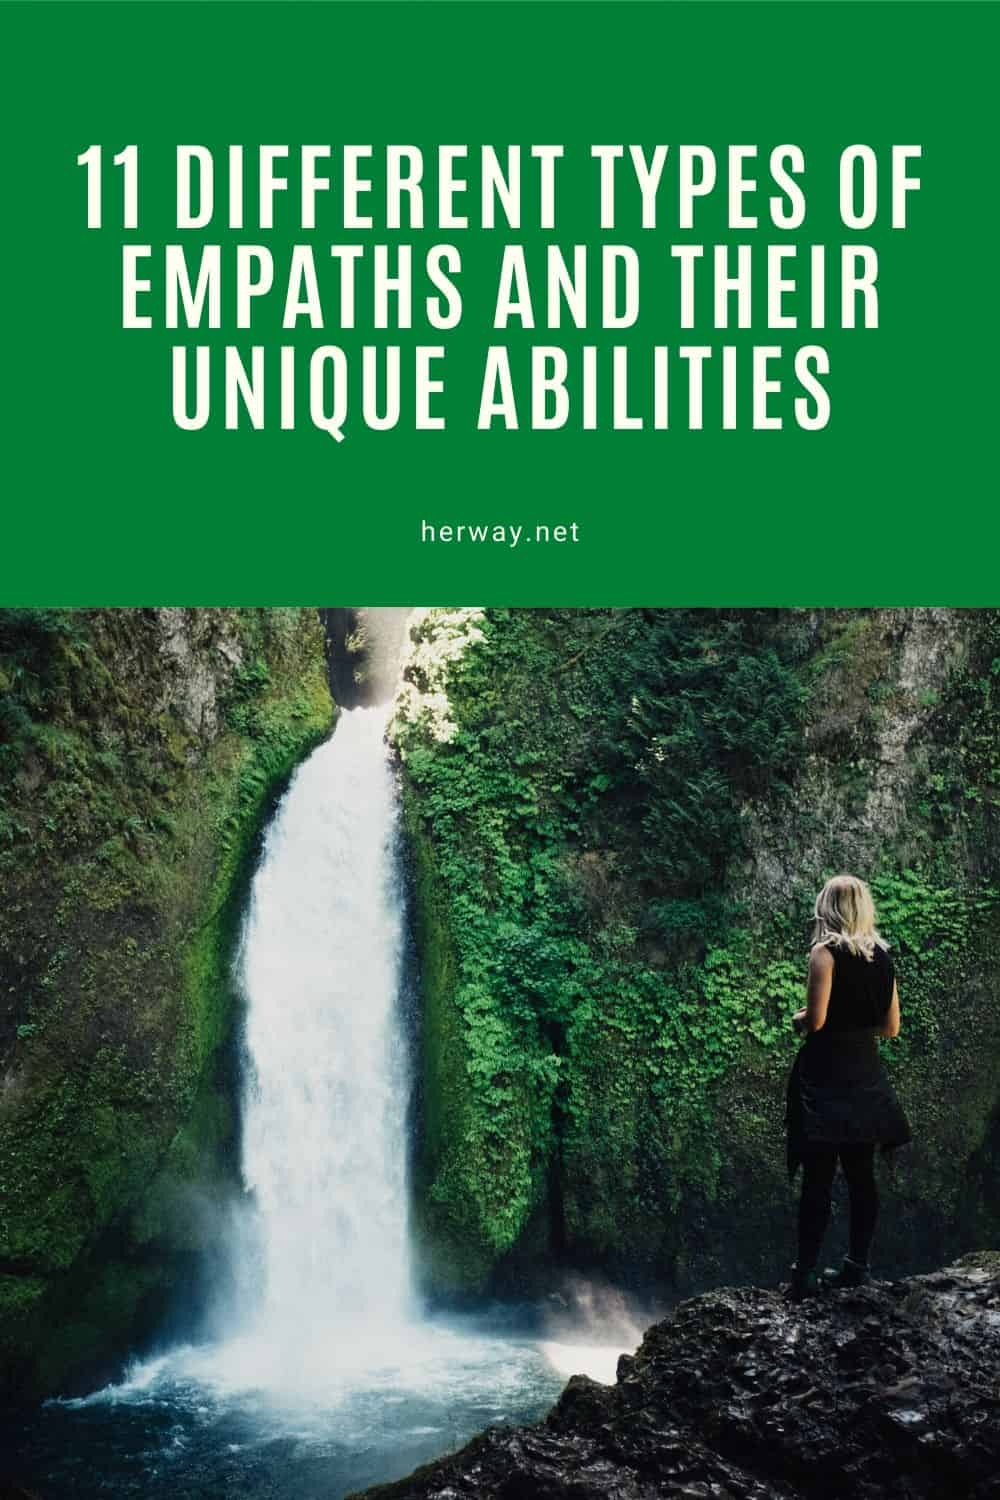 11 Different Types Of Empaths And Their Unique Abilities